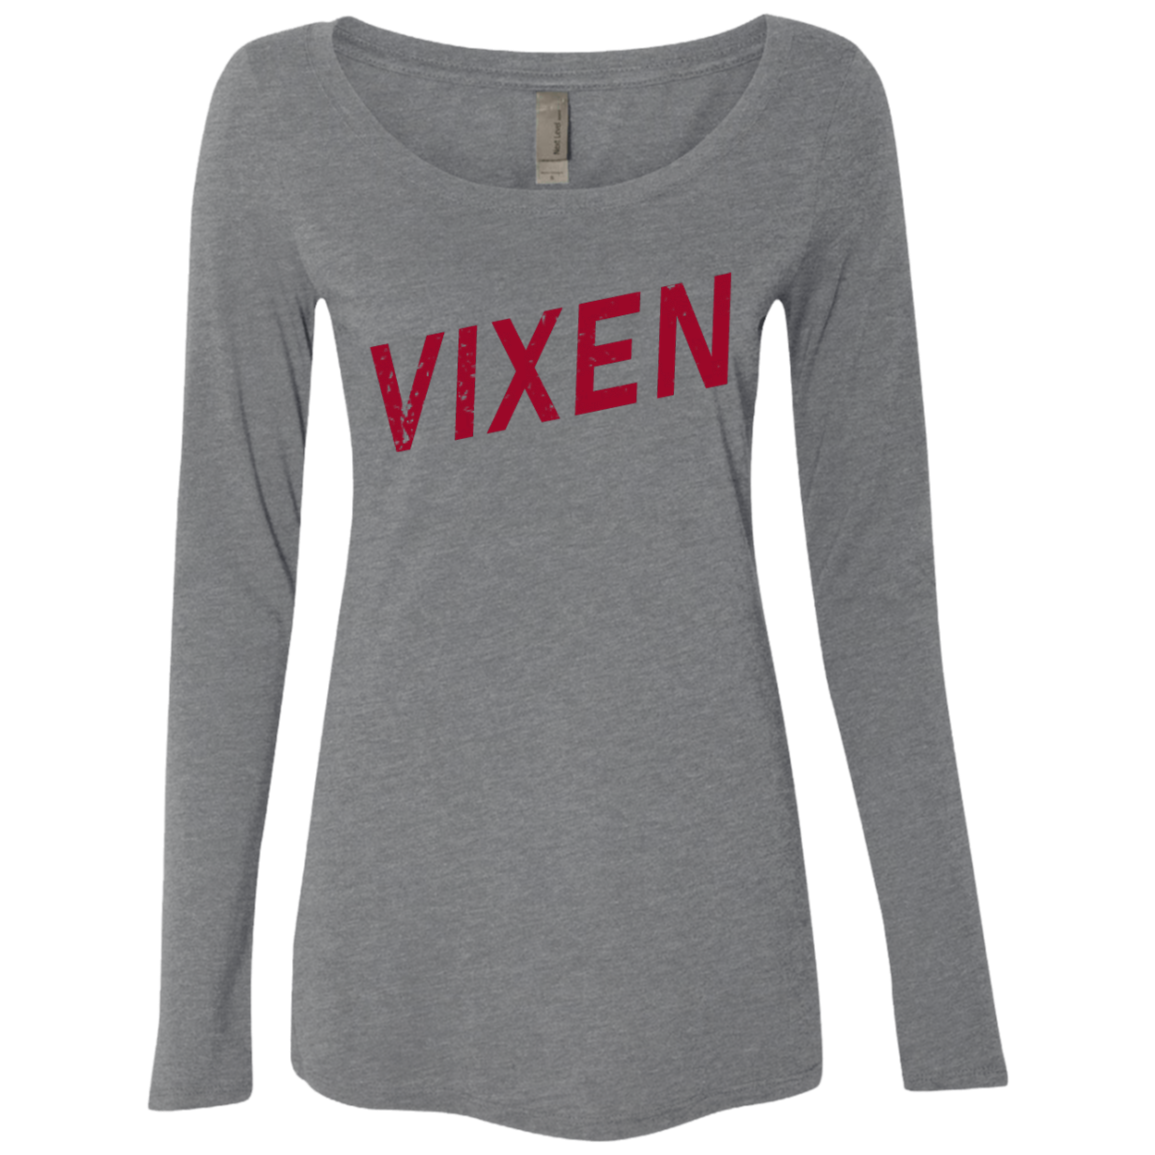 Vixen Women's Long Sleeve Tee